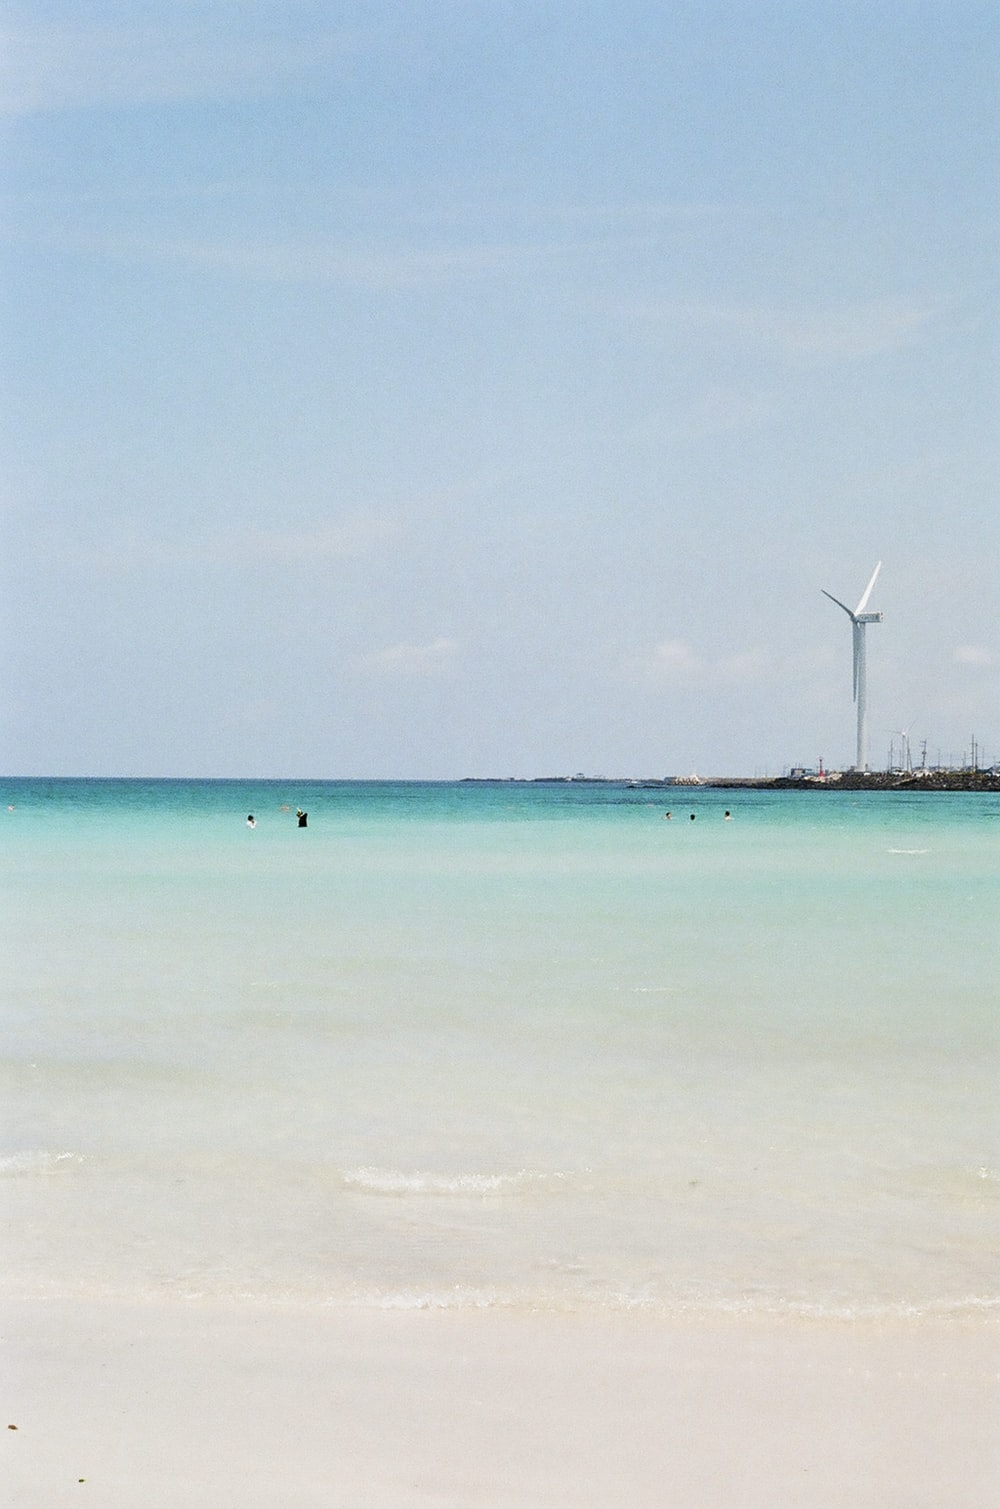 white wind turbines on green sea under blue sky during daytime